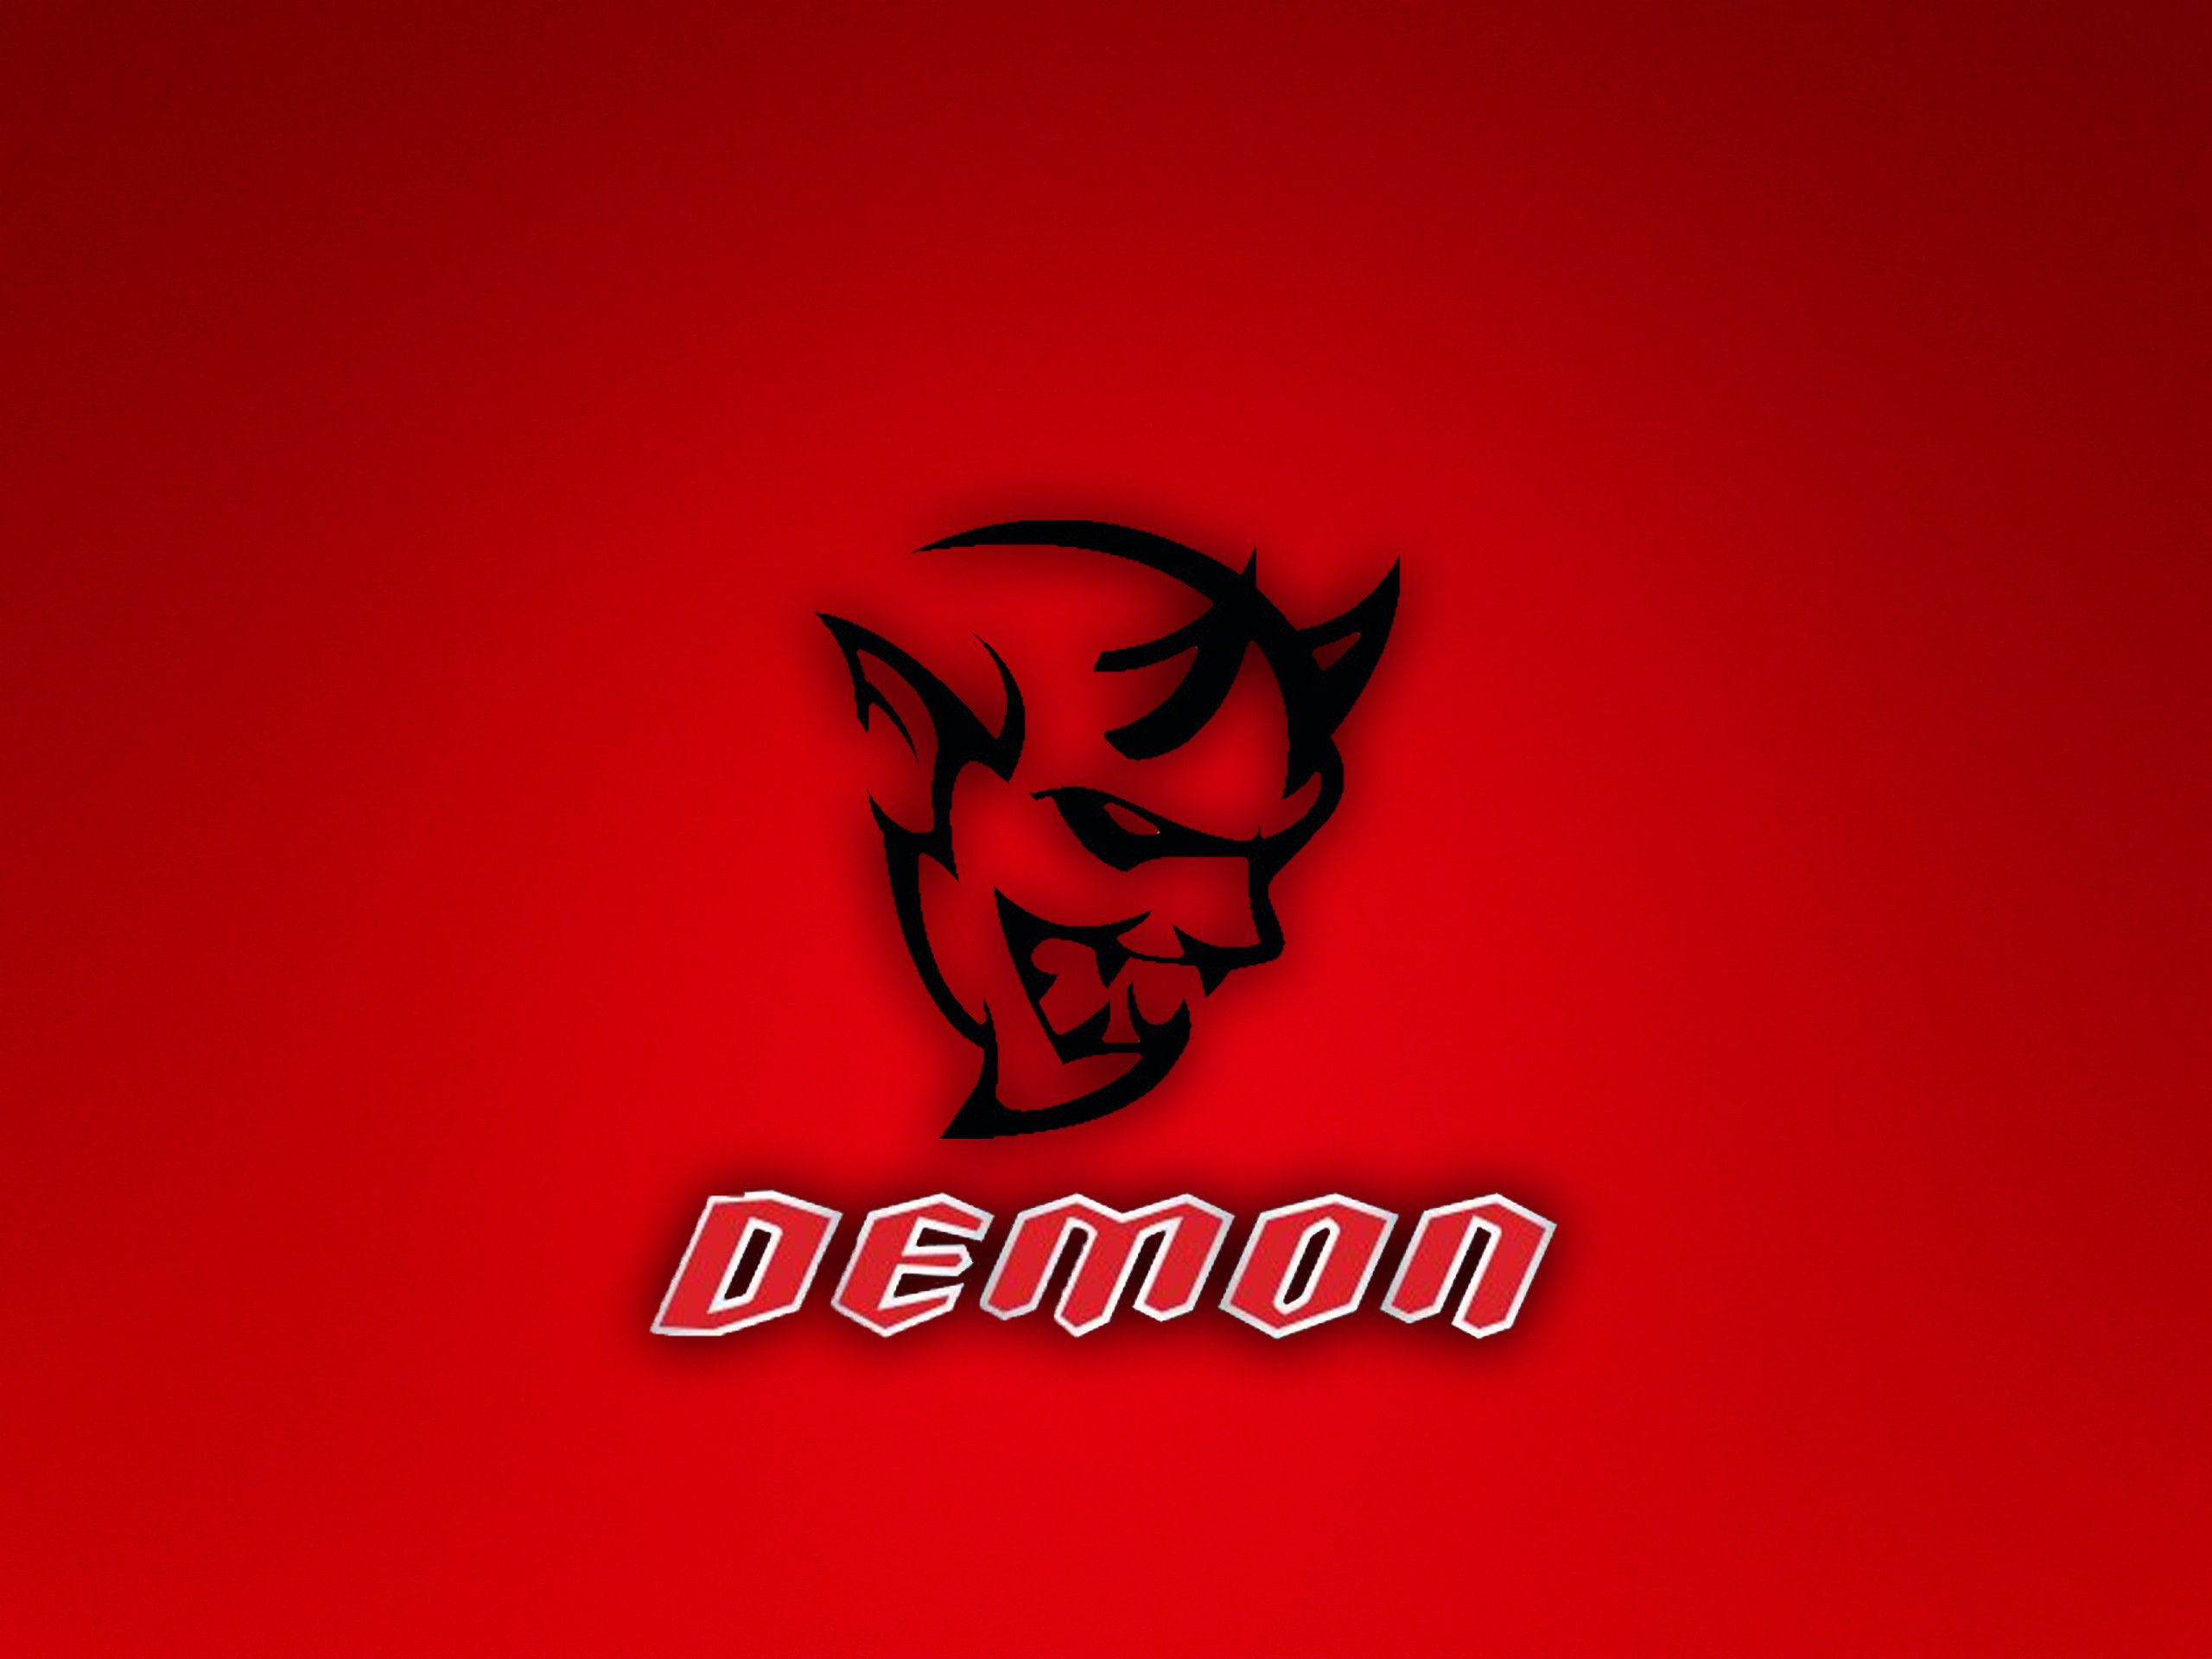 Demon Logo Wallpapers Top Free Demon Logo Backgrounds Wallpaperaccess